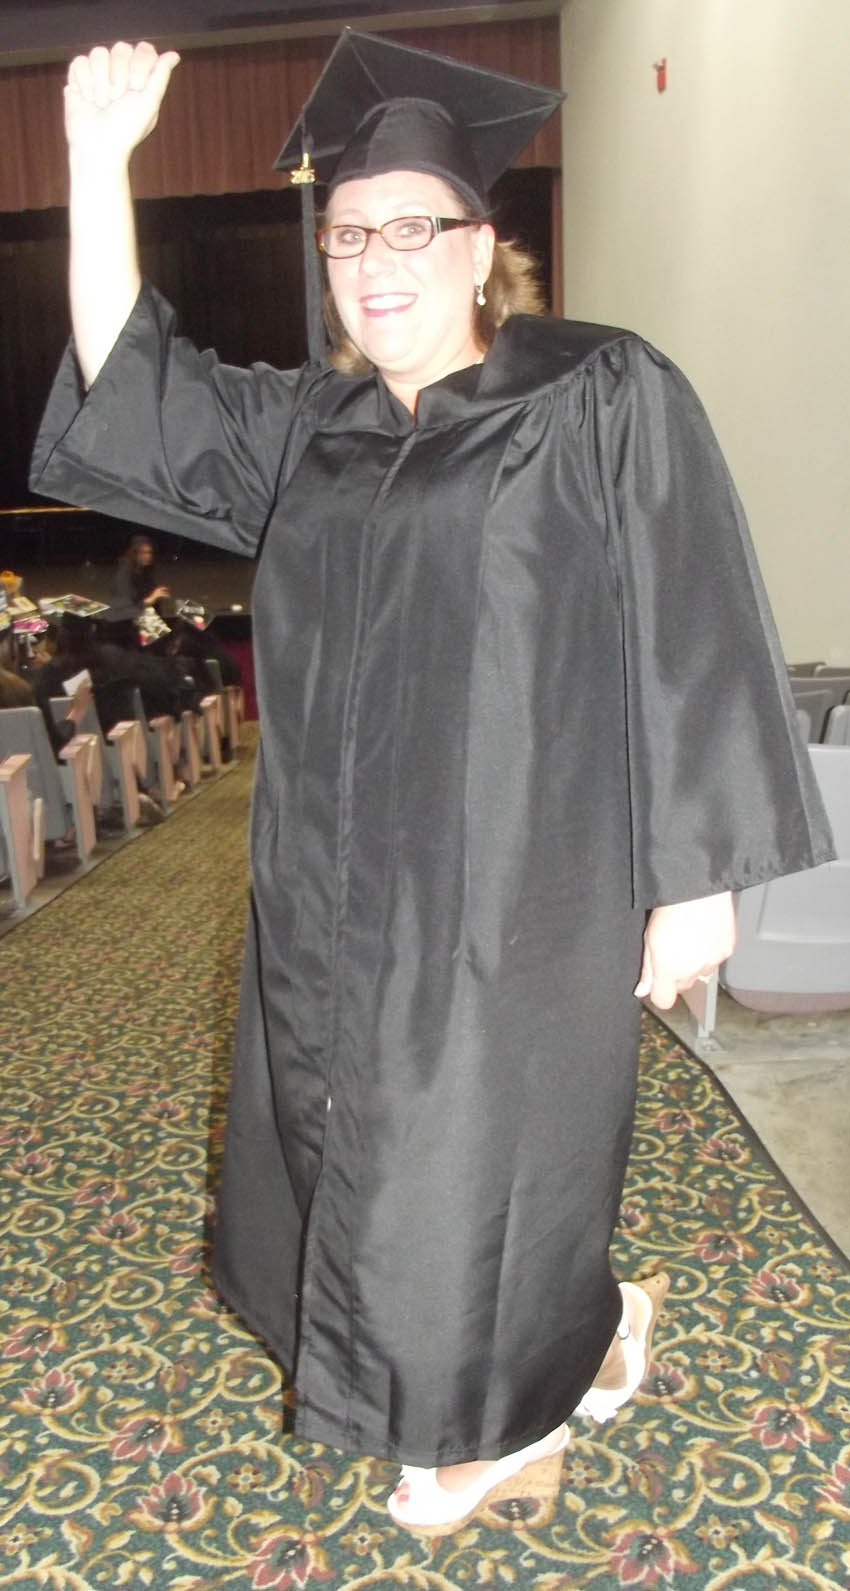 Click to enlarge,  Kristin Joanne Ostheim, of Harnett County, received her Associate of Applied Science in Nursing at the Central Carolina Community College commencement exercises on May 22 at the Dennis A. Wicker Civic Center.